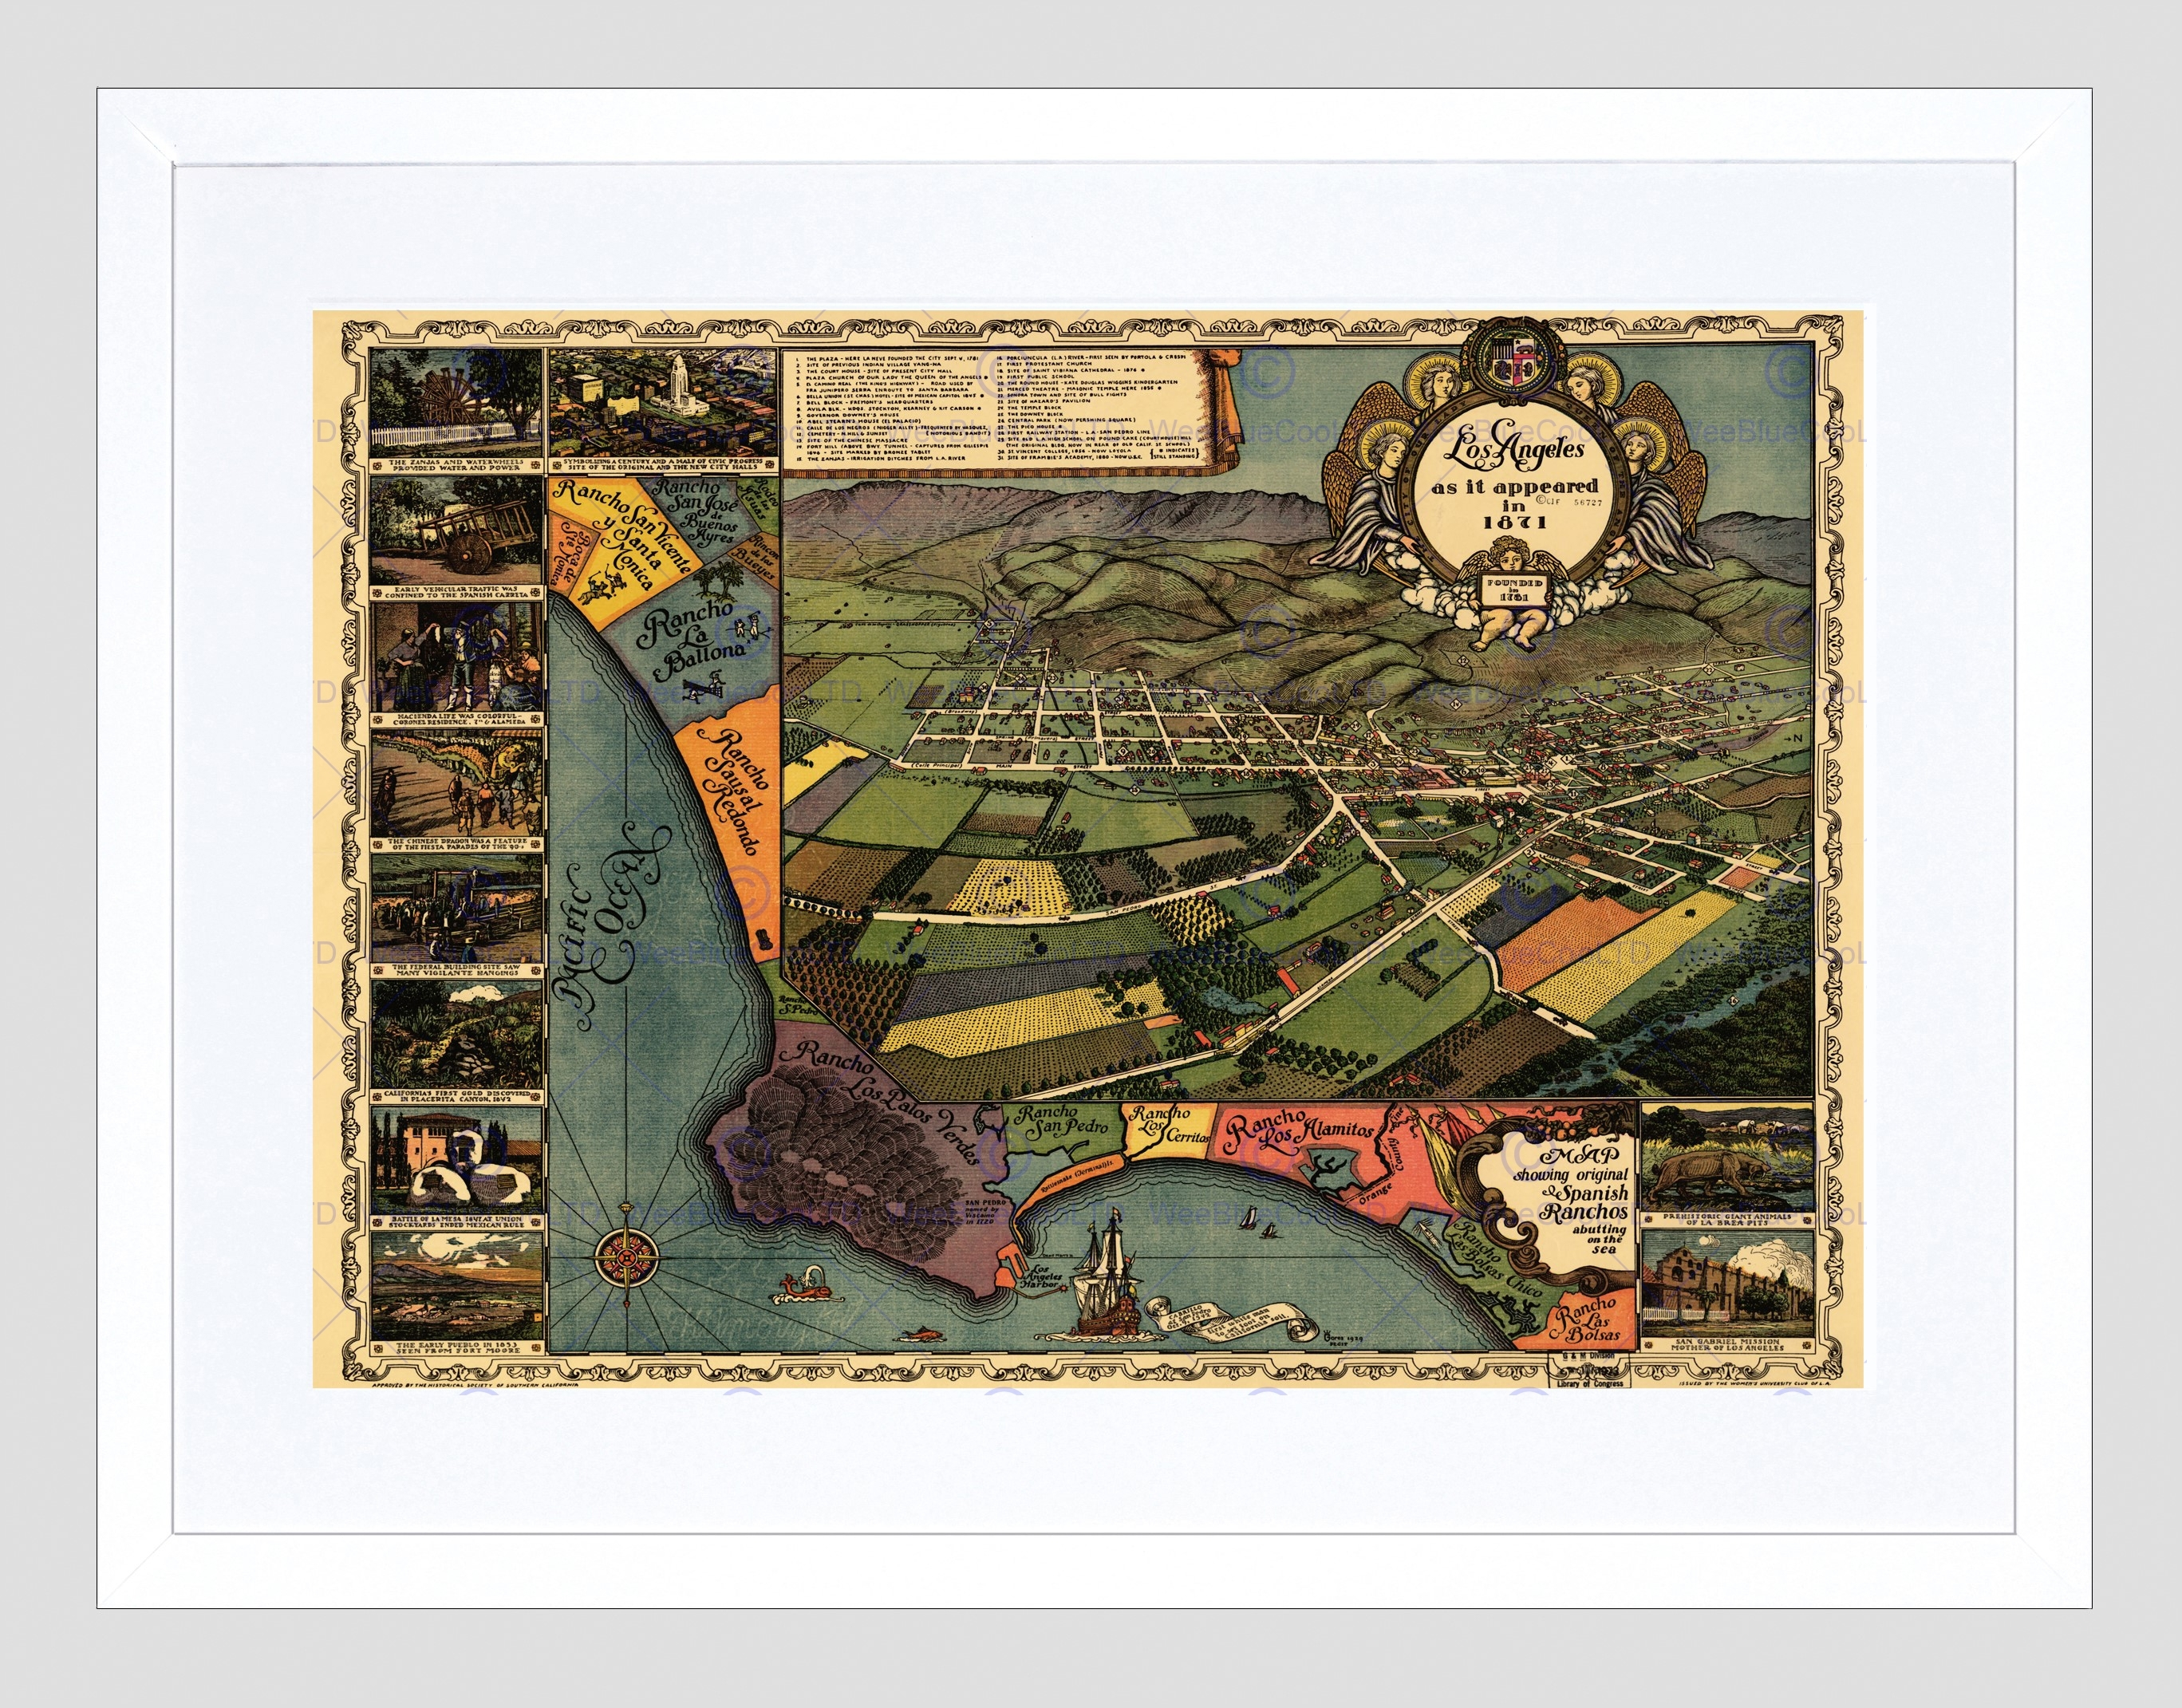 Map Los Angeles 1871 Vintage Framed Art Print Poster F97x11925 | Ebay With Most Recent Los Angeles Framed Art Prints (View 13 of 15)